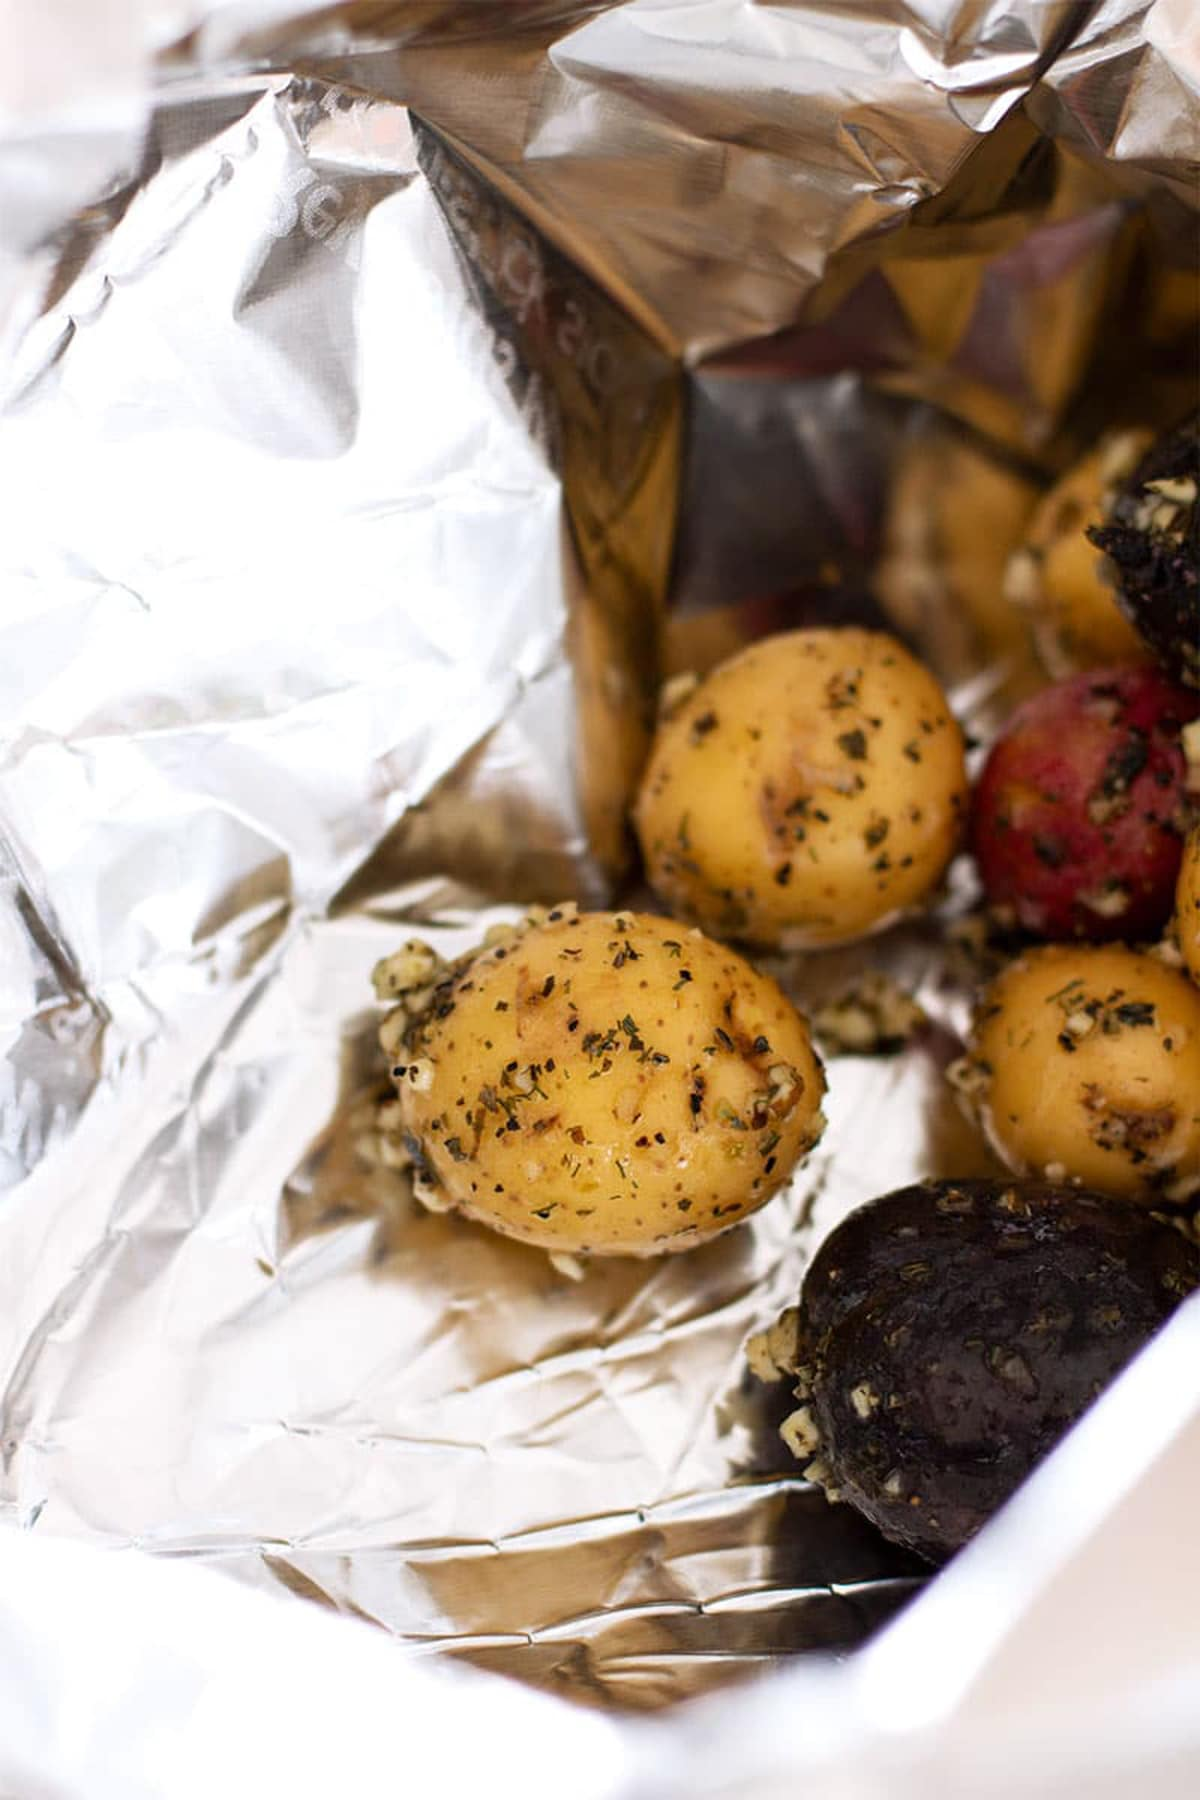 Marinated Garlic and Herb Smoked Potatoes sitting on a piece of aluminum foil.